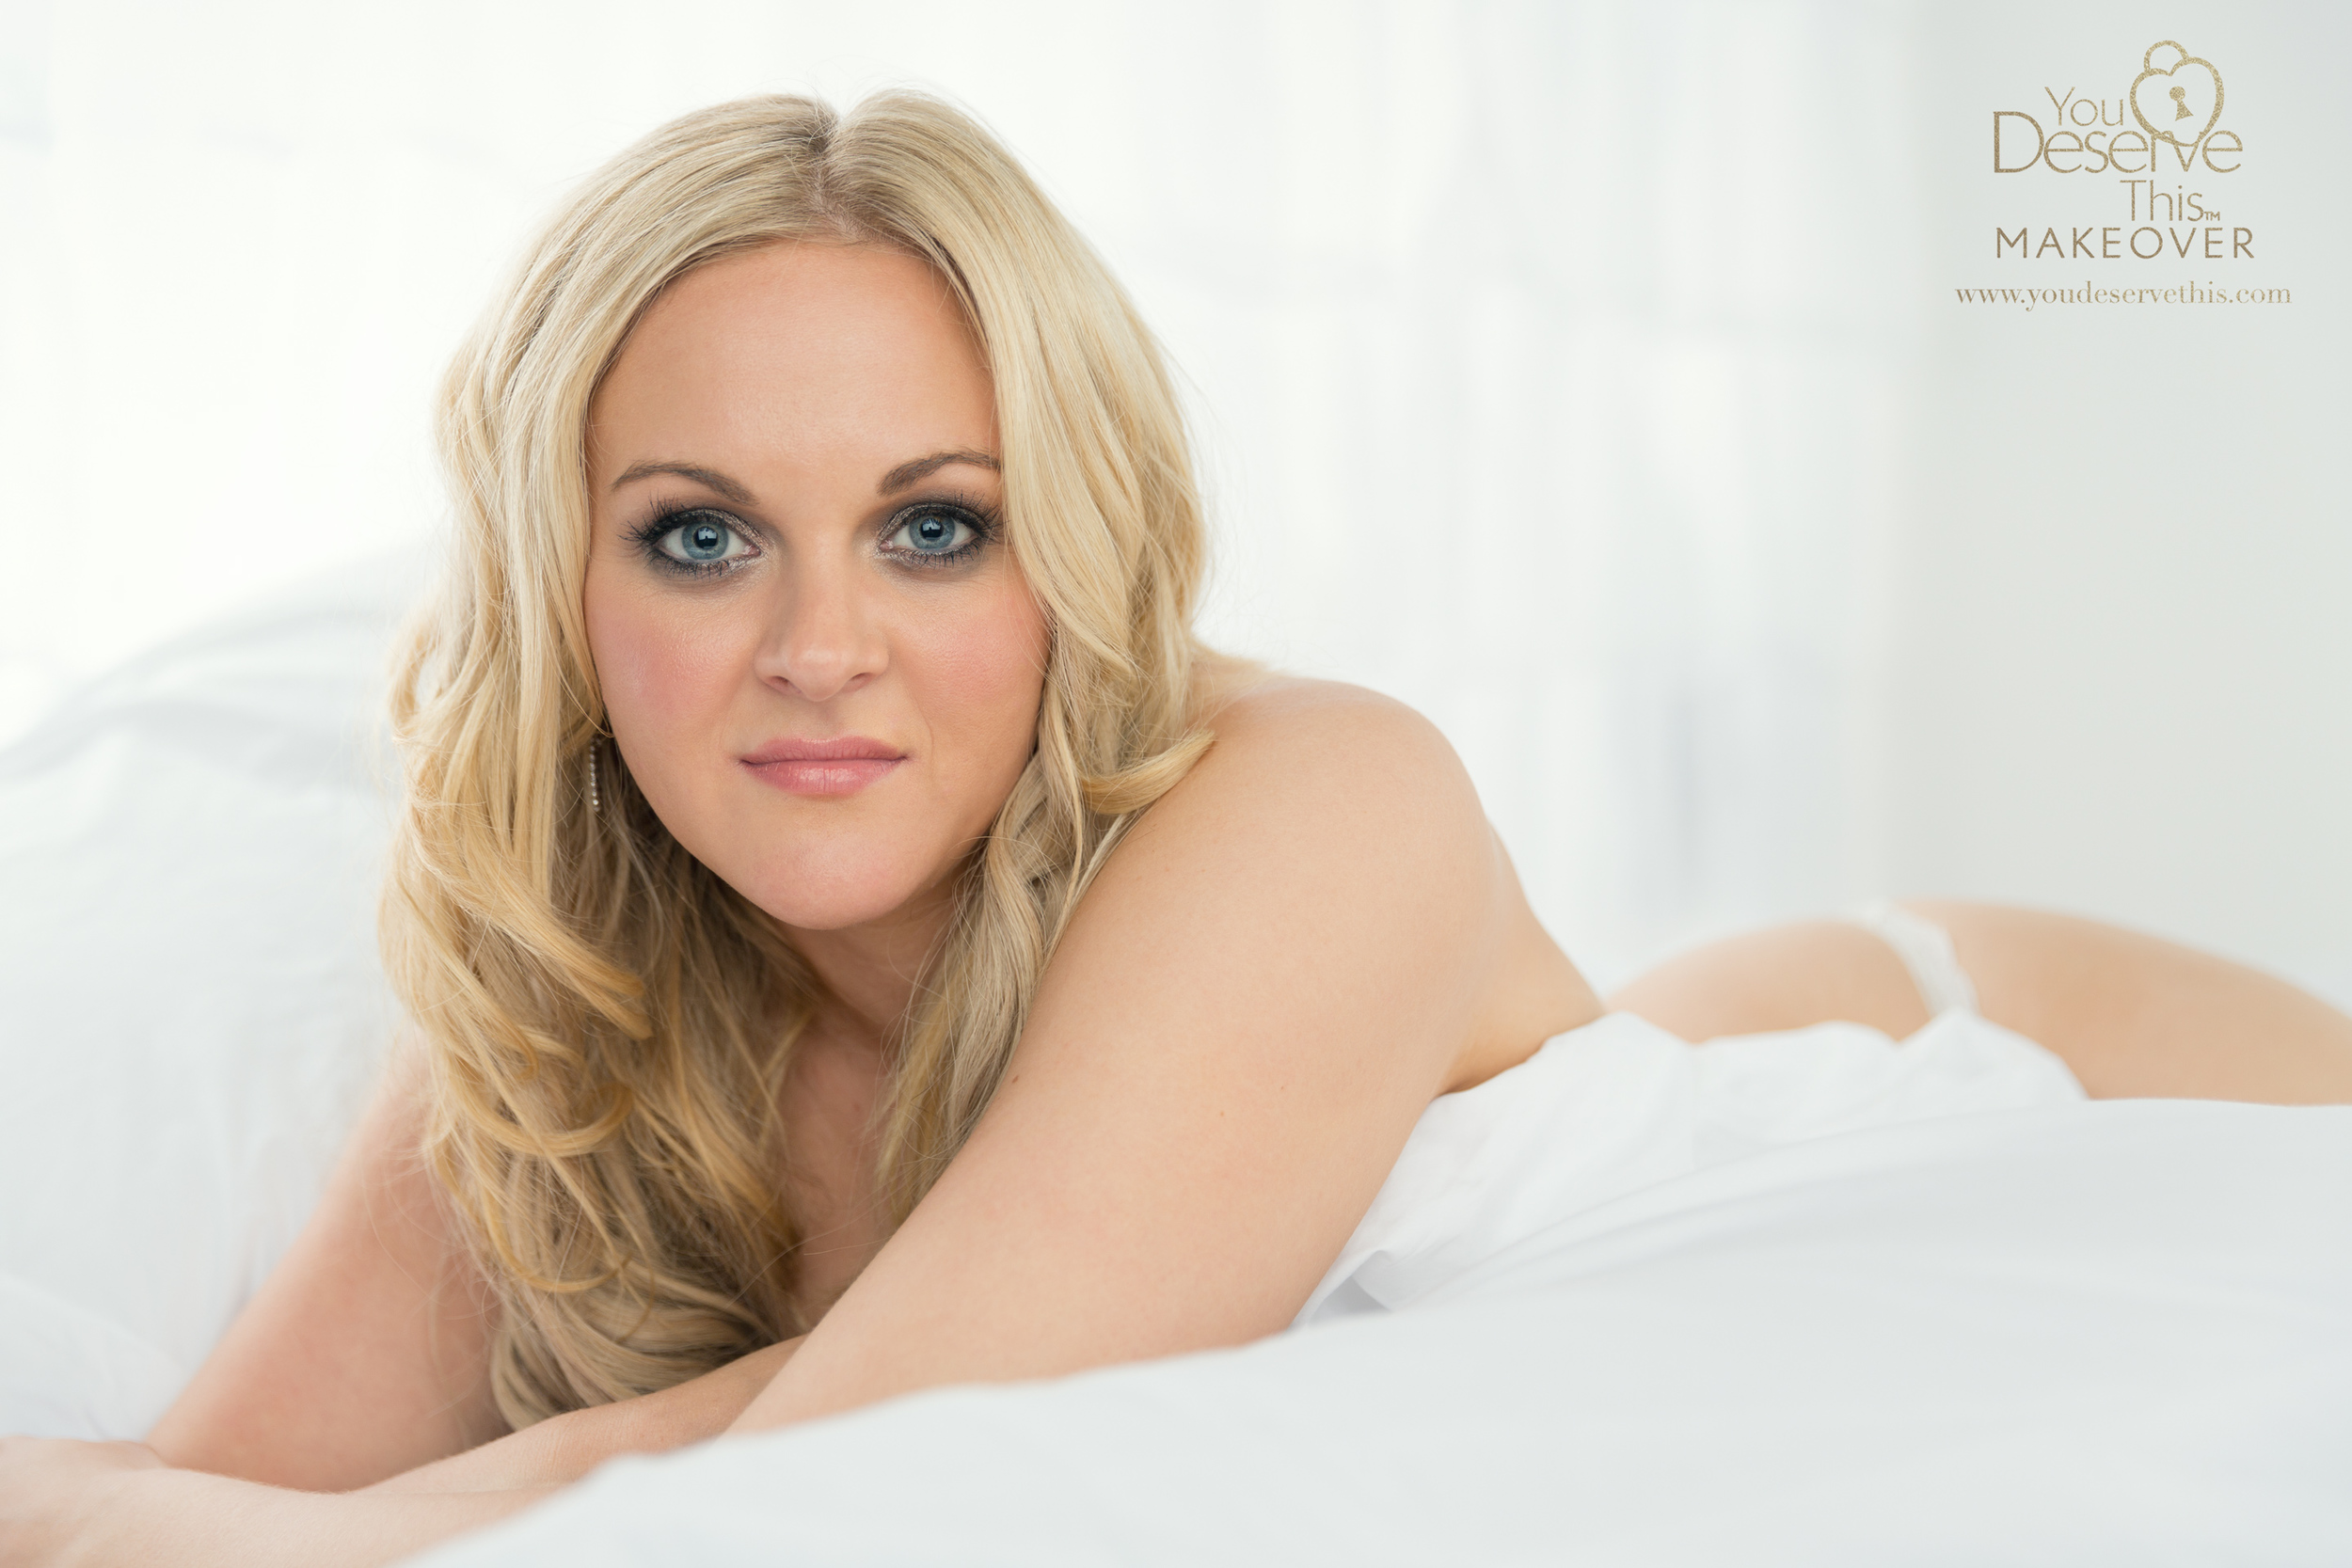 Boudoir photography for women in Hampshire